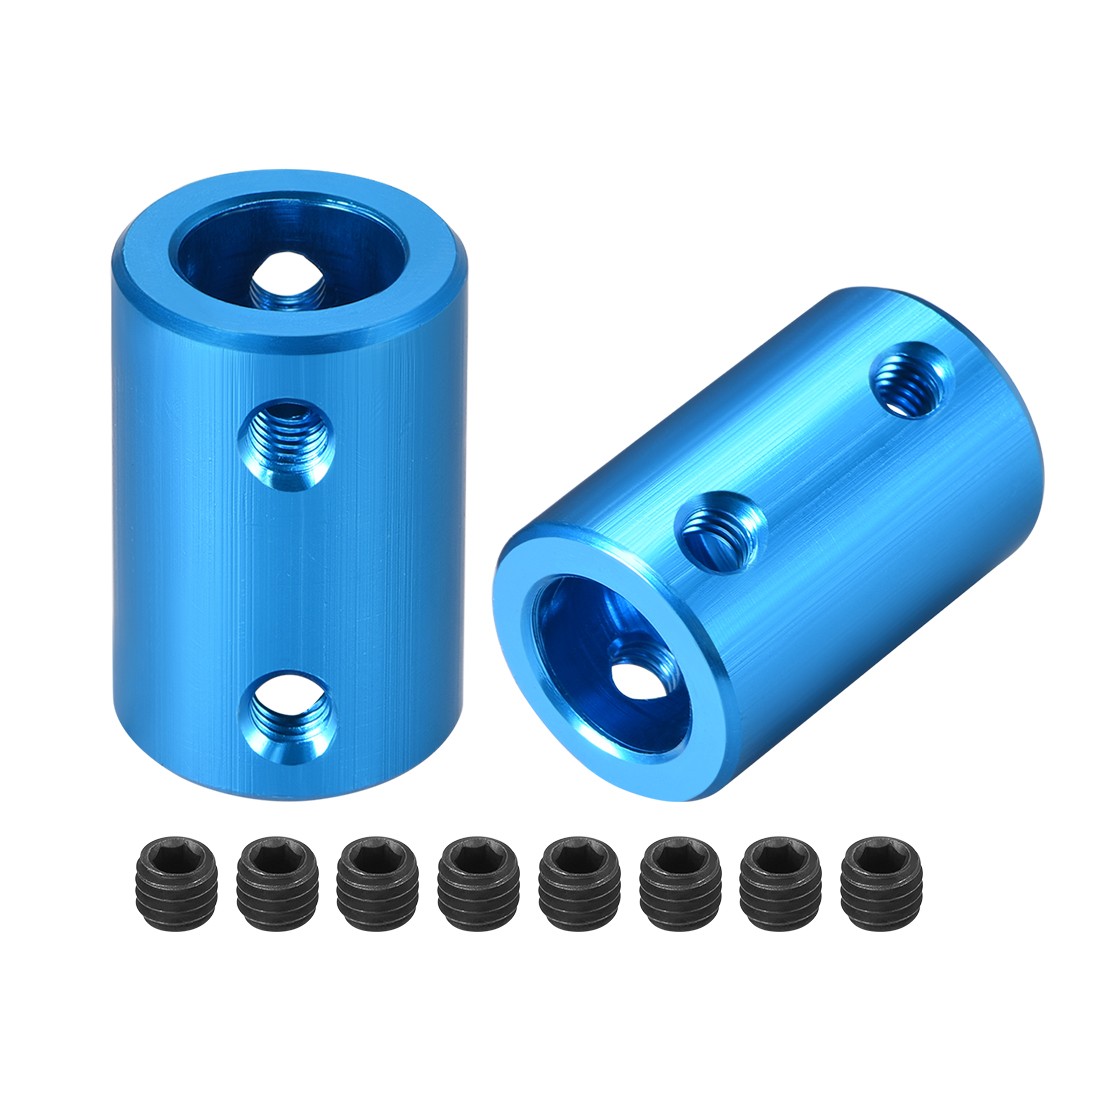 Shaft Coupling 10mm to 10mm L25xD16 Robot Motor Wheel Rigid Coupler Blue 2 Pcs